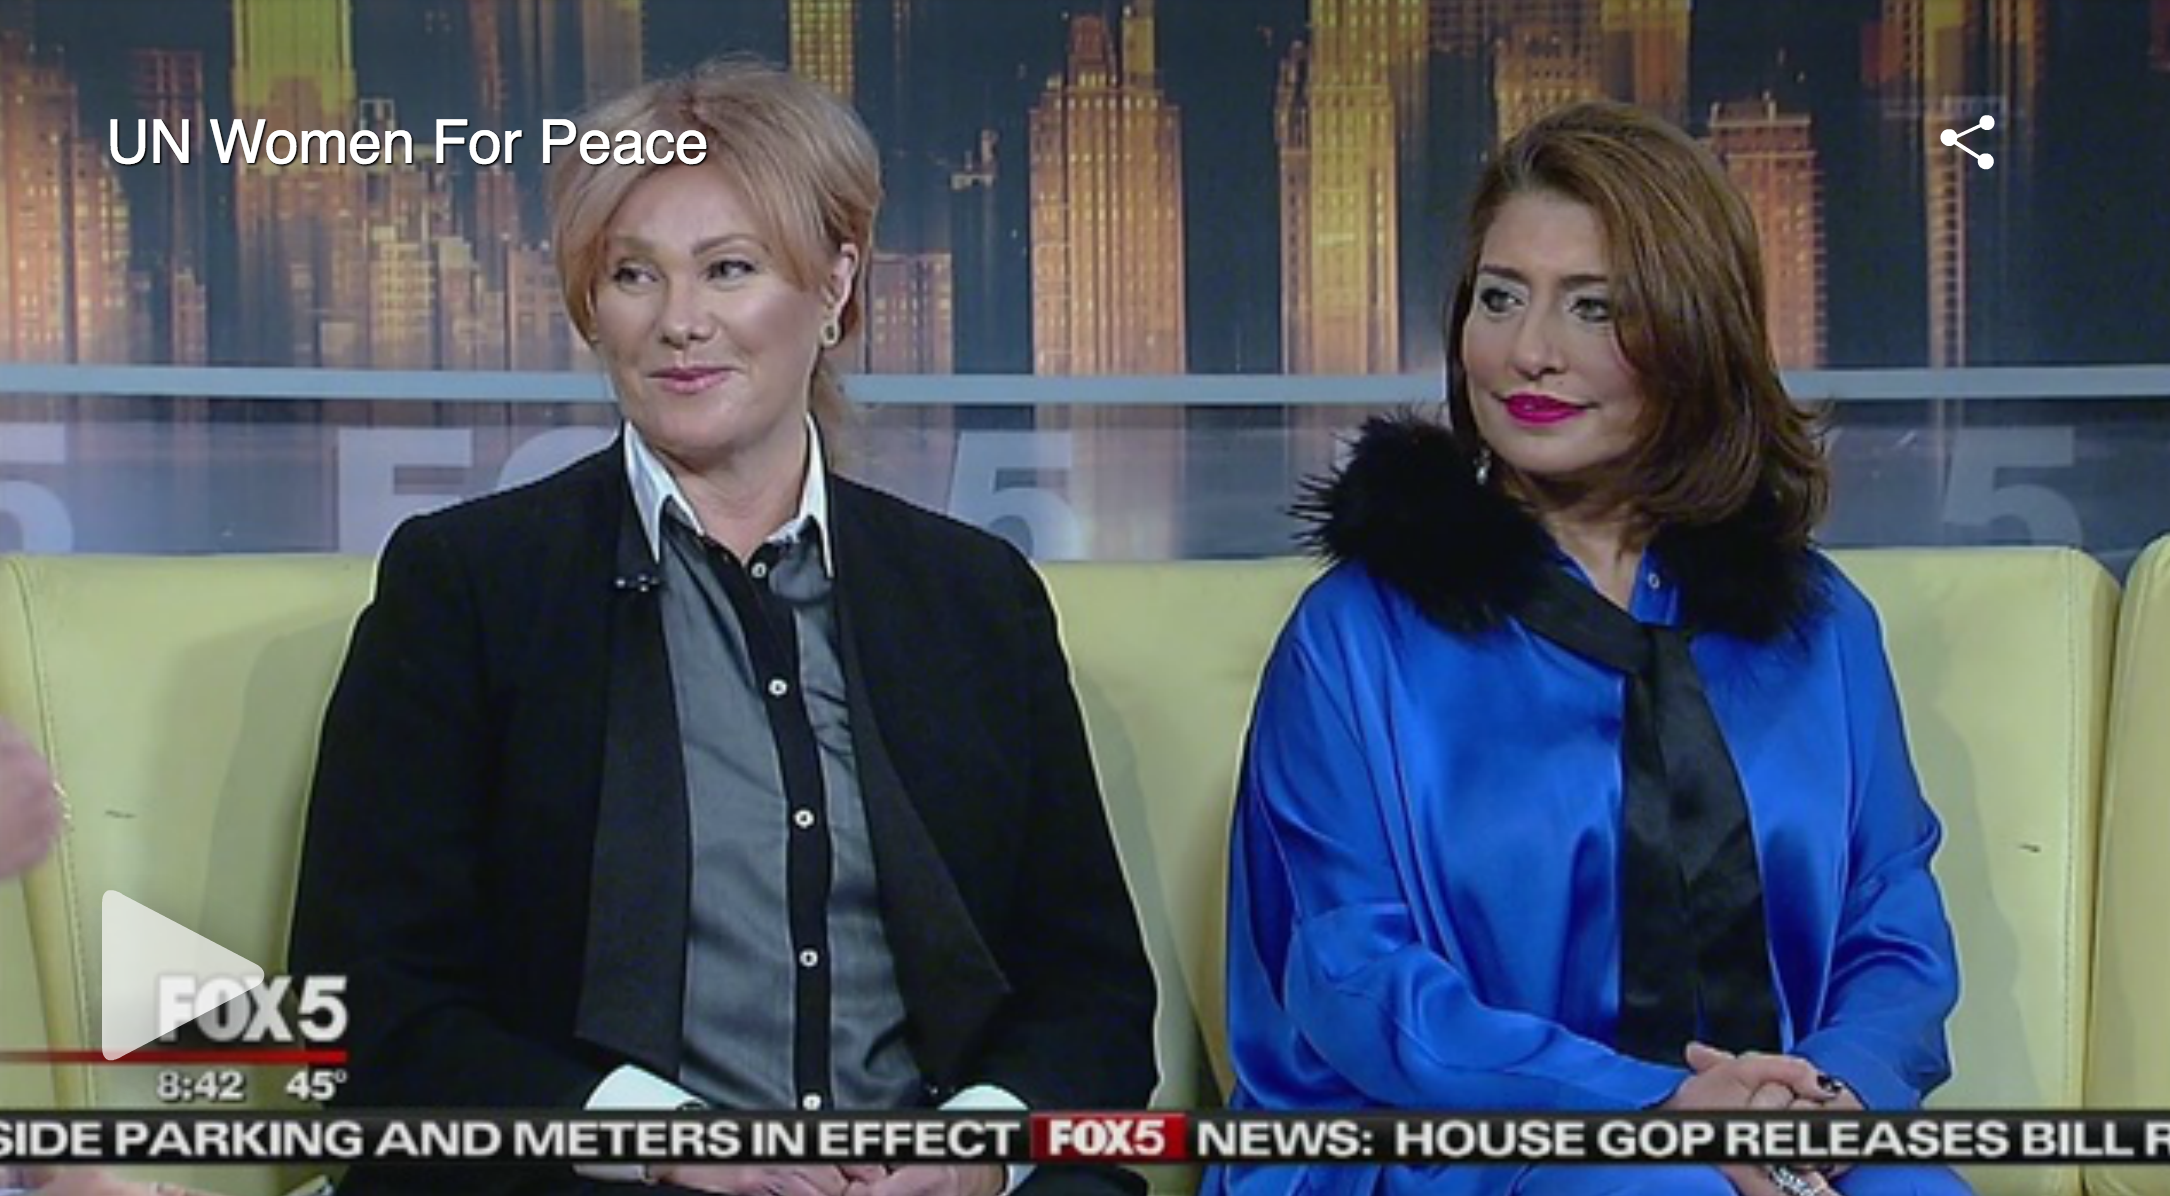 Muna Rihani on Good Day NY - Muna Rihani & Deborra Lee Furness preview the UN Women for Peace organization and International Women's Day 2017. - 3/7/2017